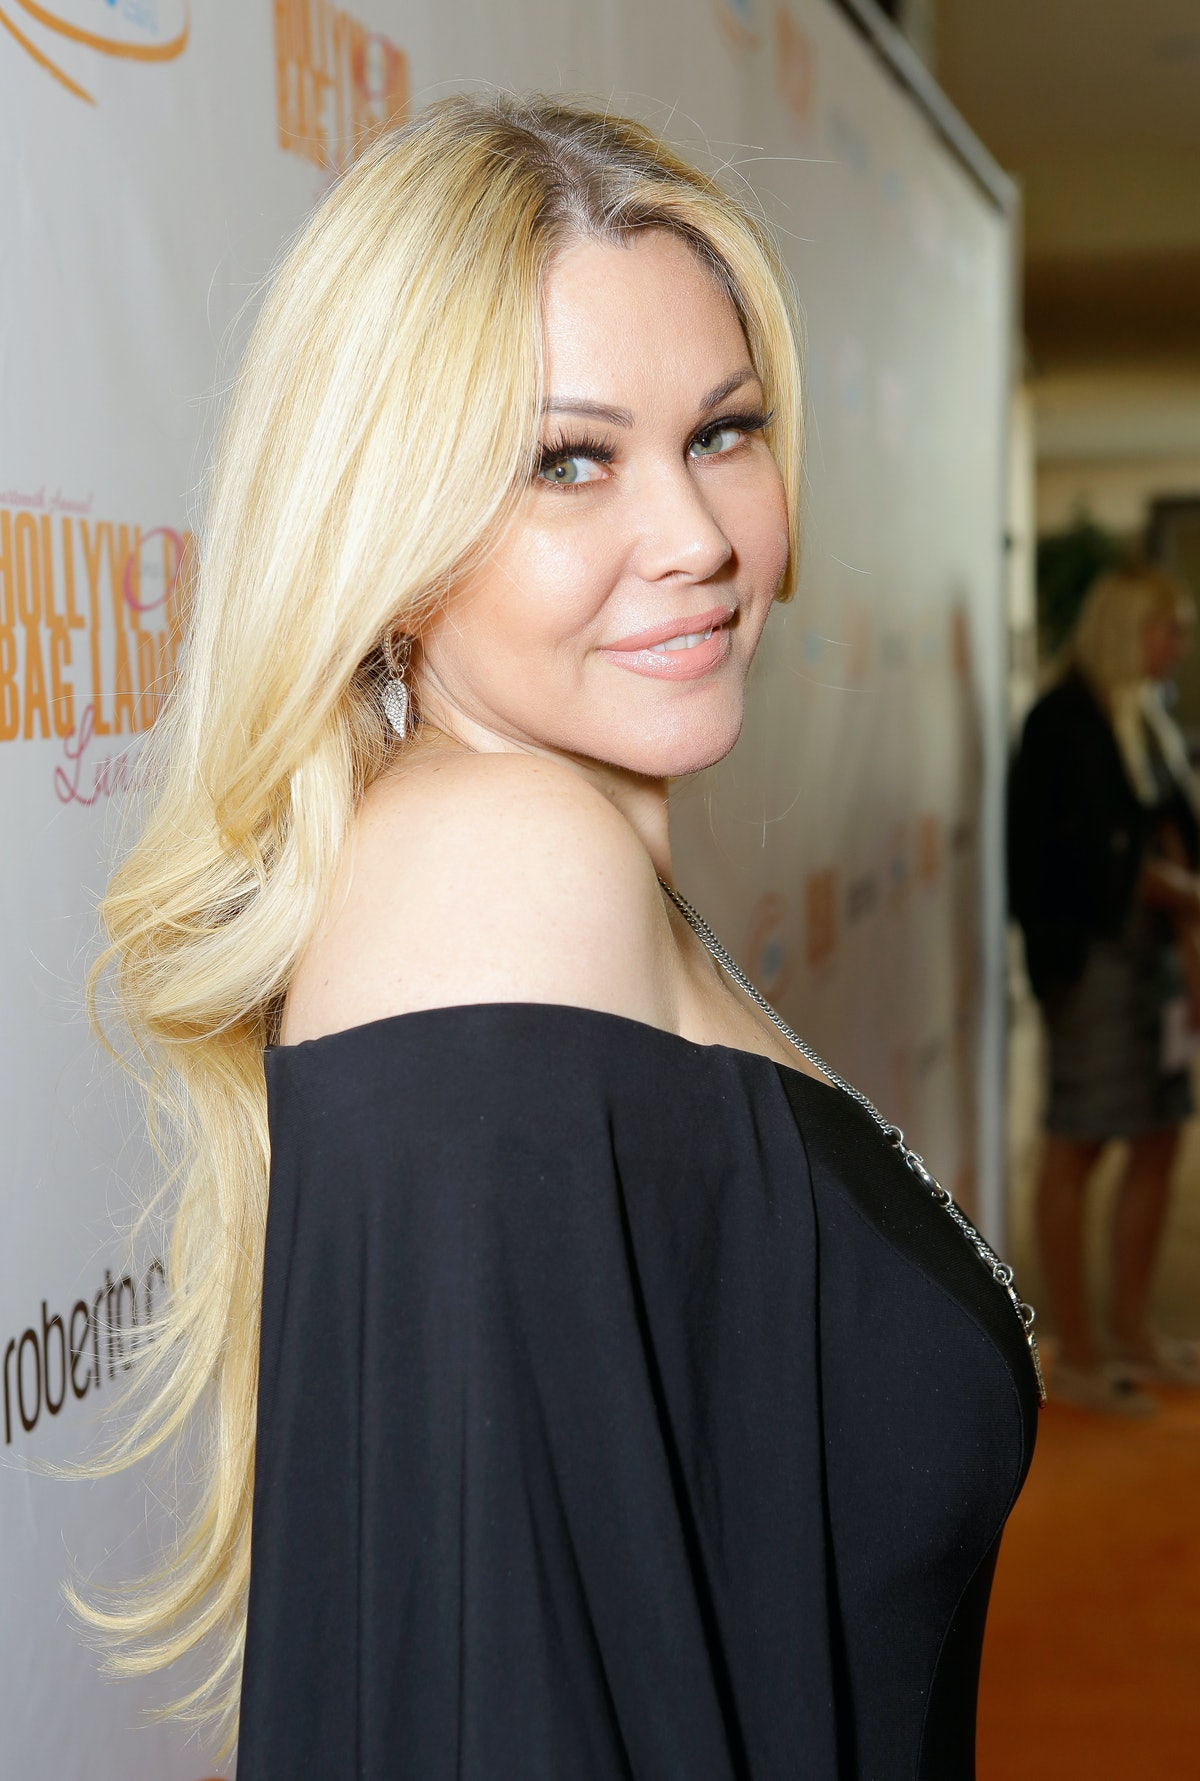 BEVERLY HILLS, CA - NOVEMBER 17:  Shanna Moakler  at Lupus LA's Hollywood Bag Ladies Luncheon at The Beverly Hilton Hotel on November 17, 2017 in Beverly Hills, California.  (Photo by Tiffany Rose/Getty Images for Lupus LA)